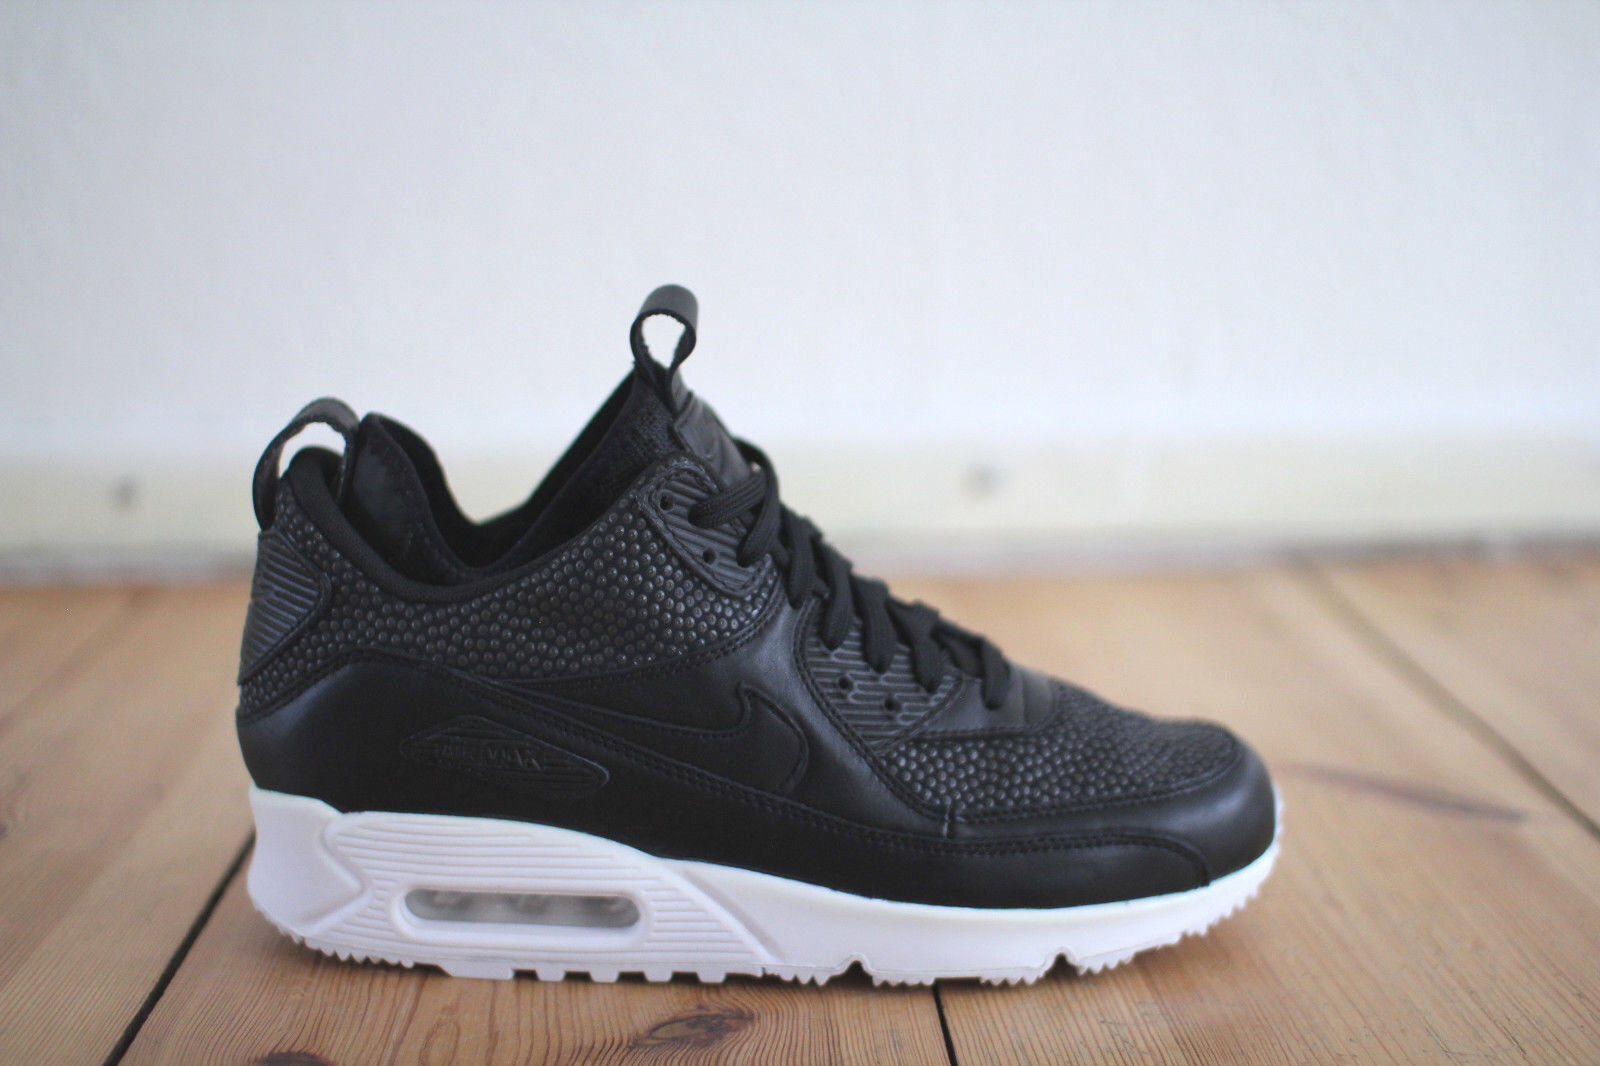 2d31030cf7 Nike Max 90 Sneakerboot Tech black white Gr. 41,42 NEU & OVP Air  noebuf7929-new shoes